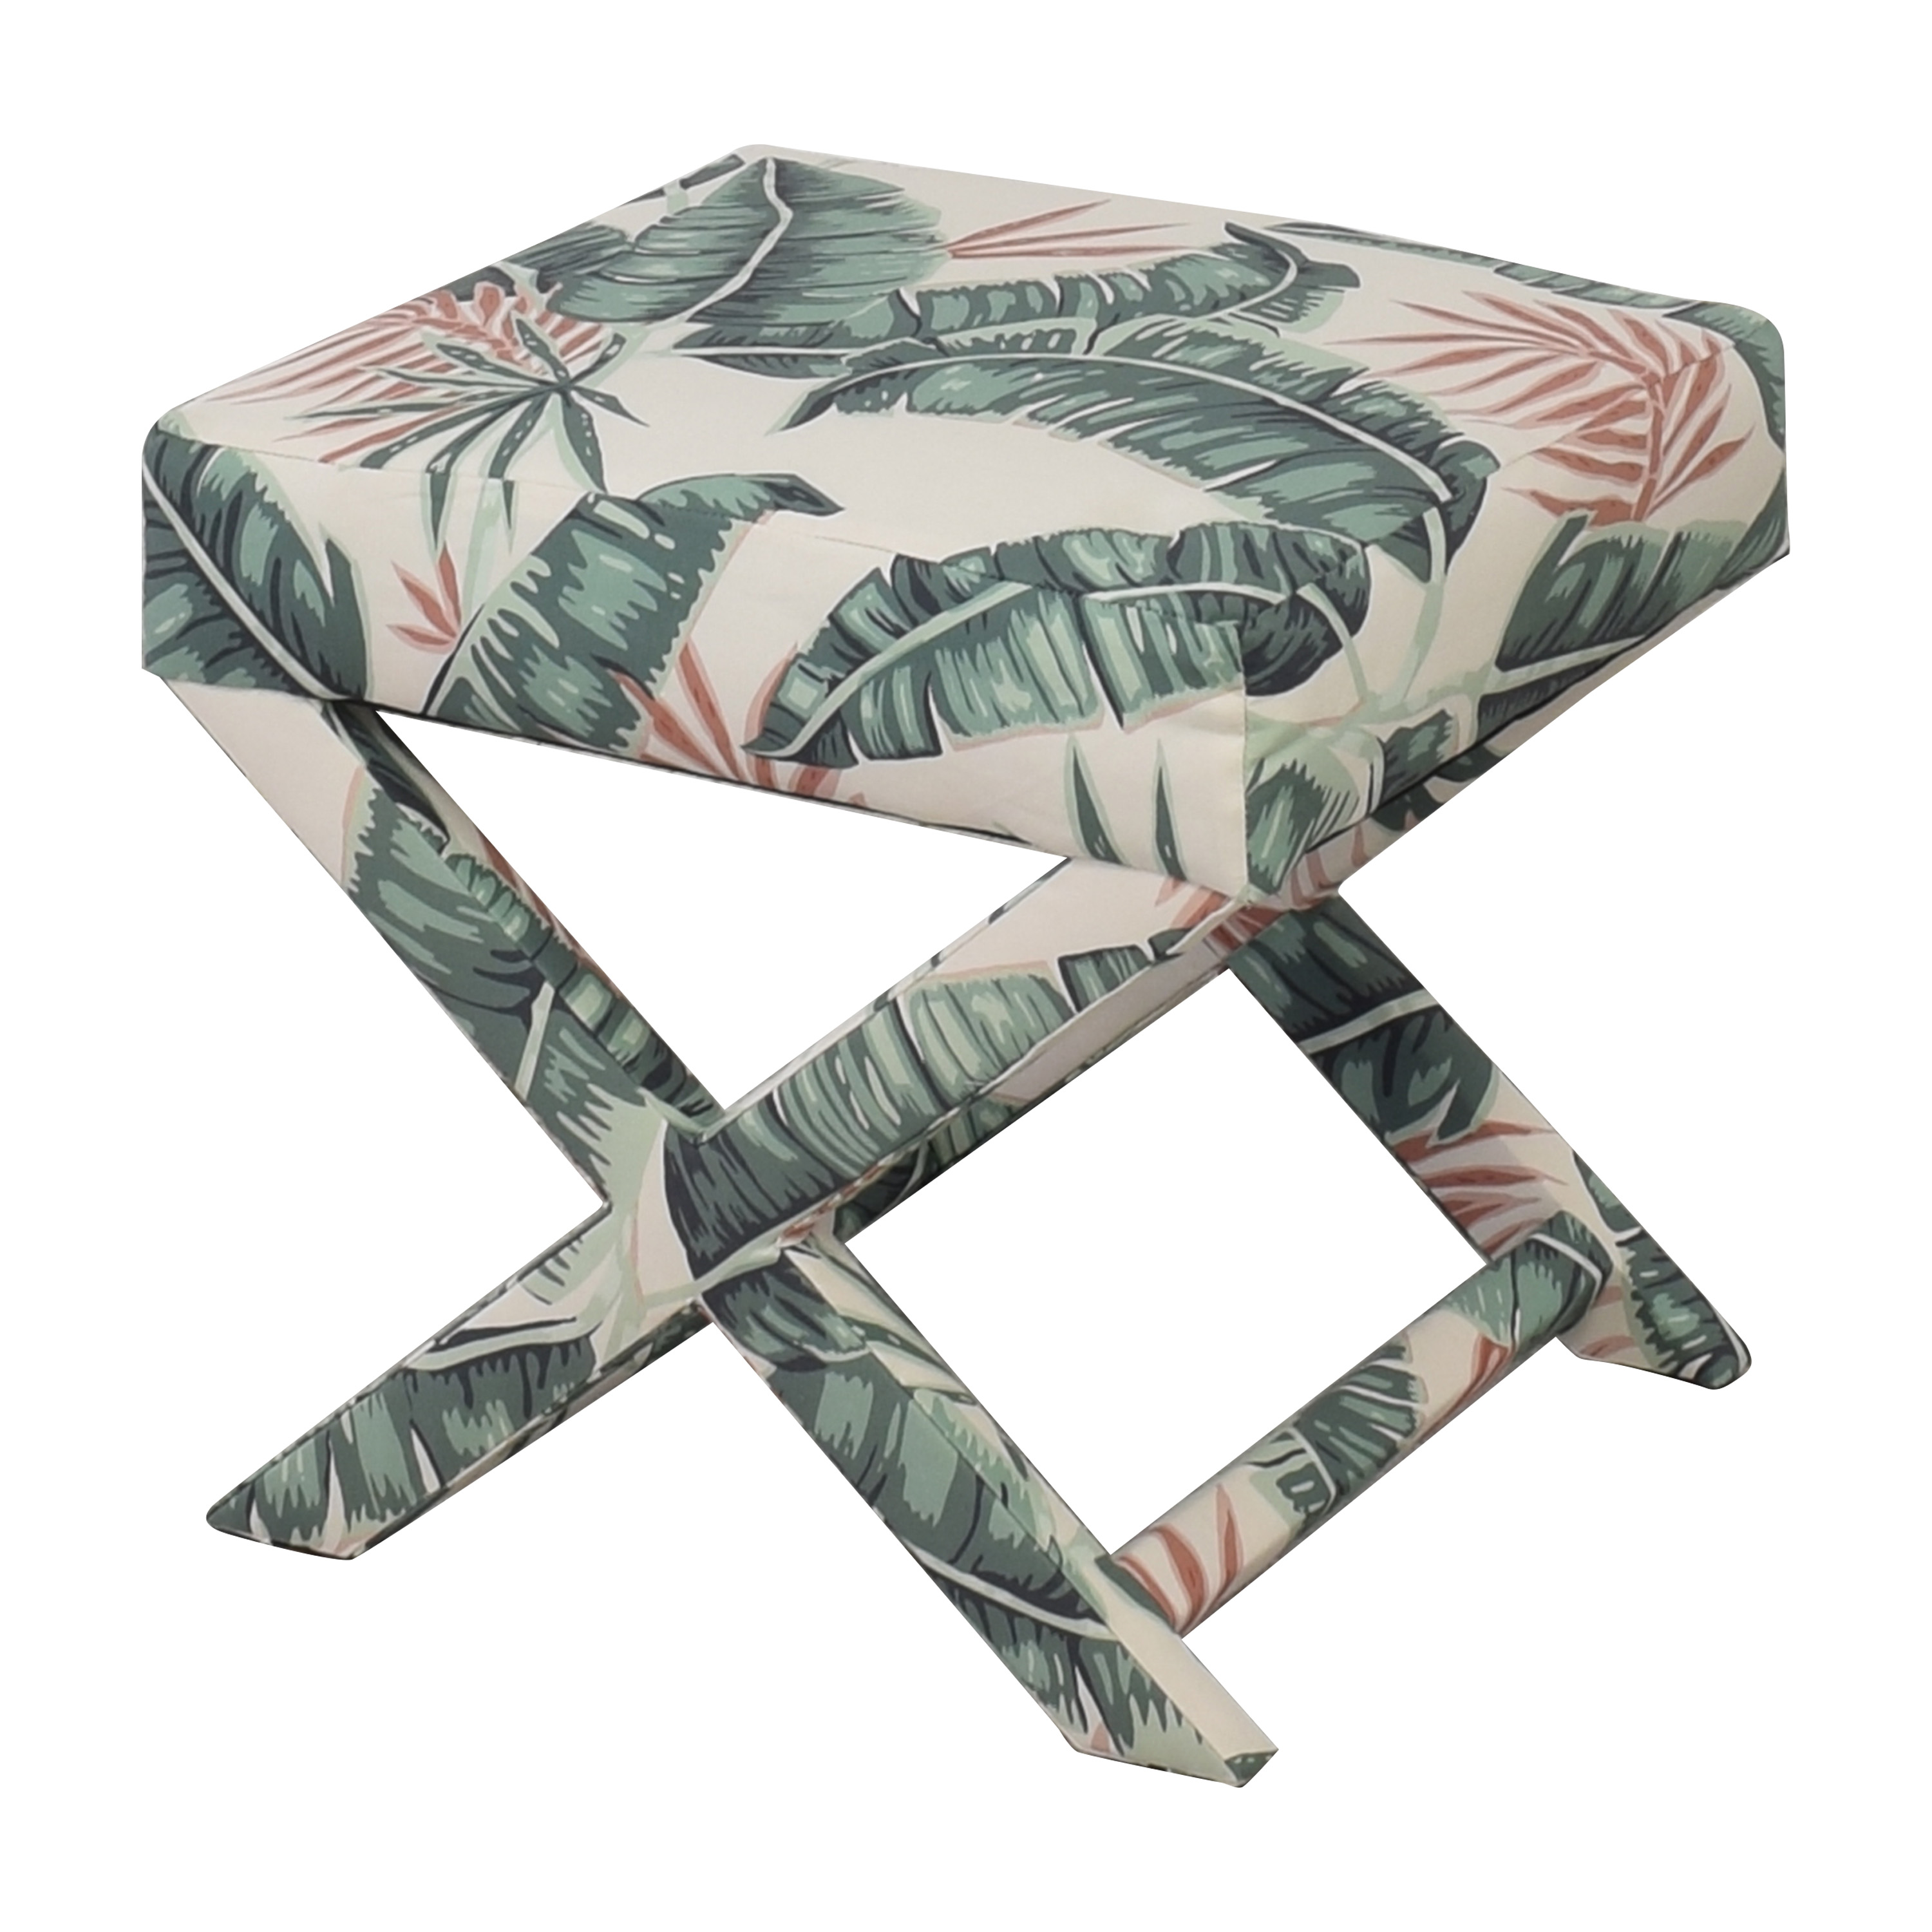 The Inside Banana Palm X Bench for sale